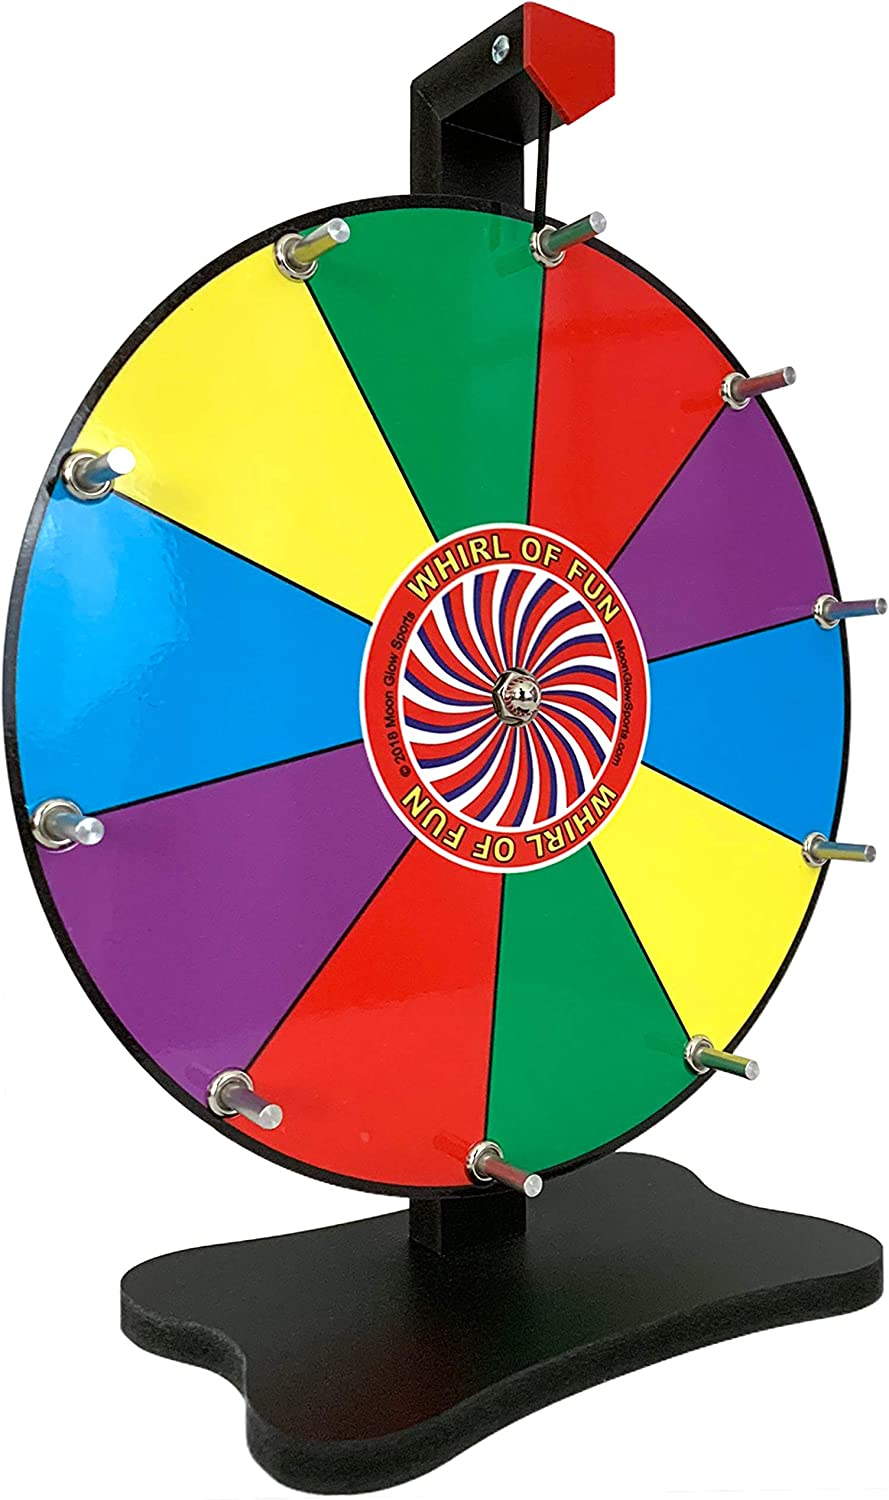 Moon Glow deportes 12 inch premio wheel-tabletop color – Rueda ...